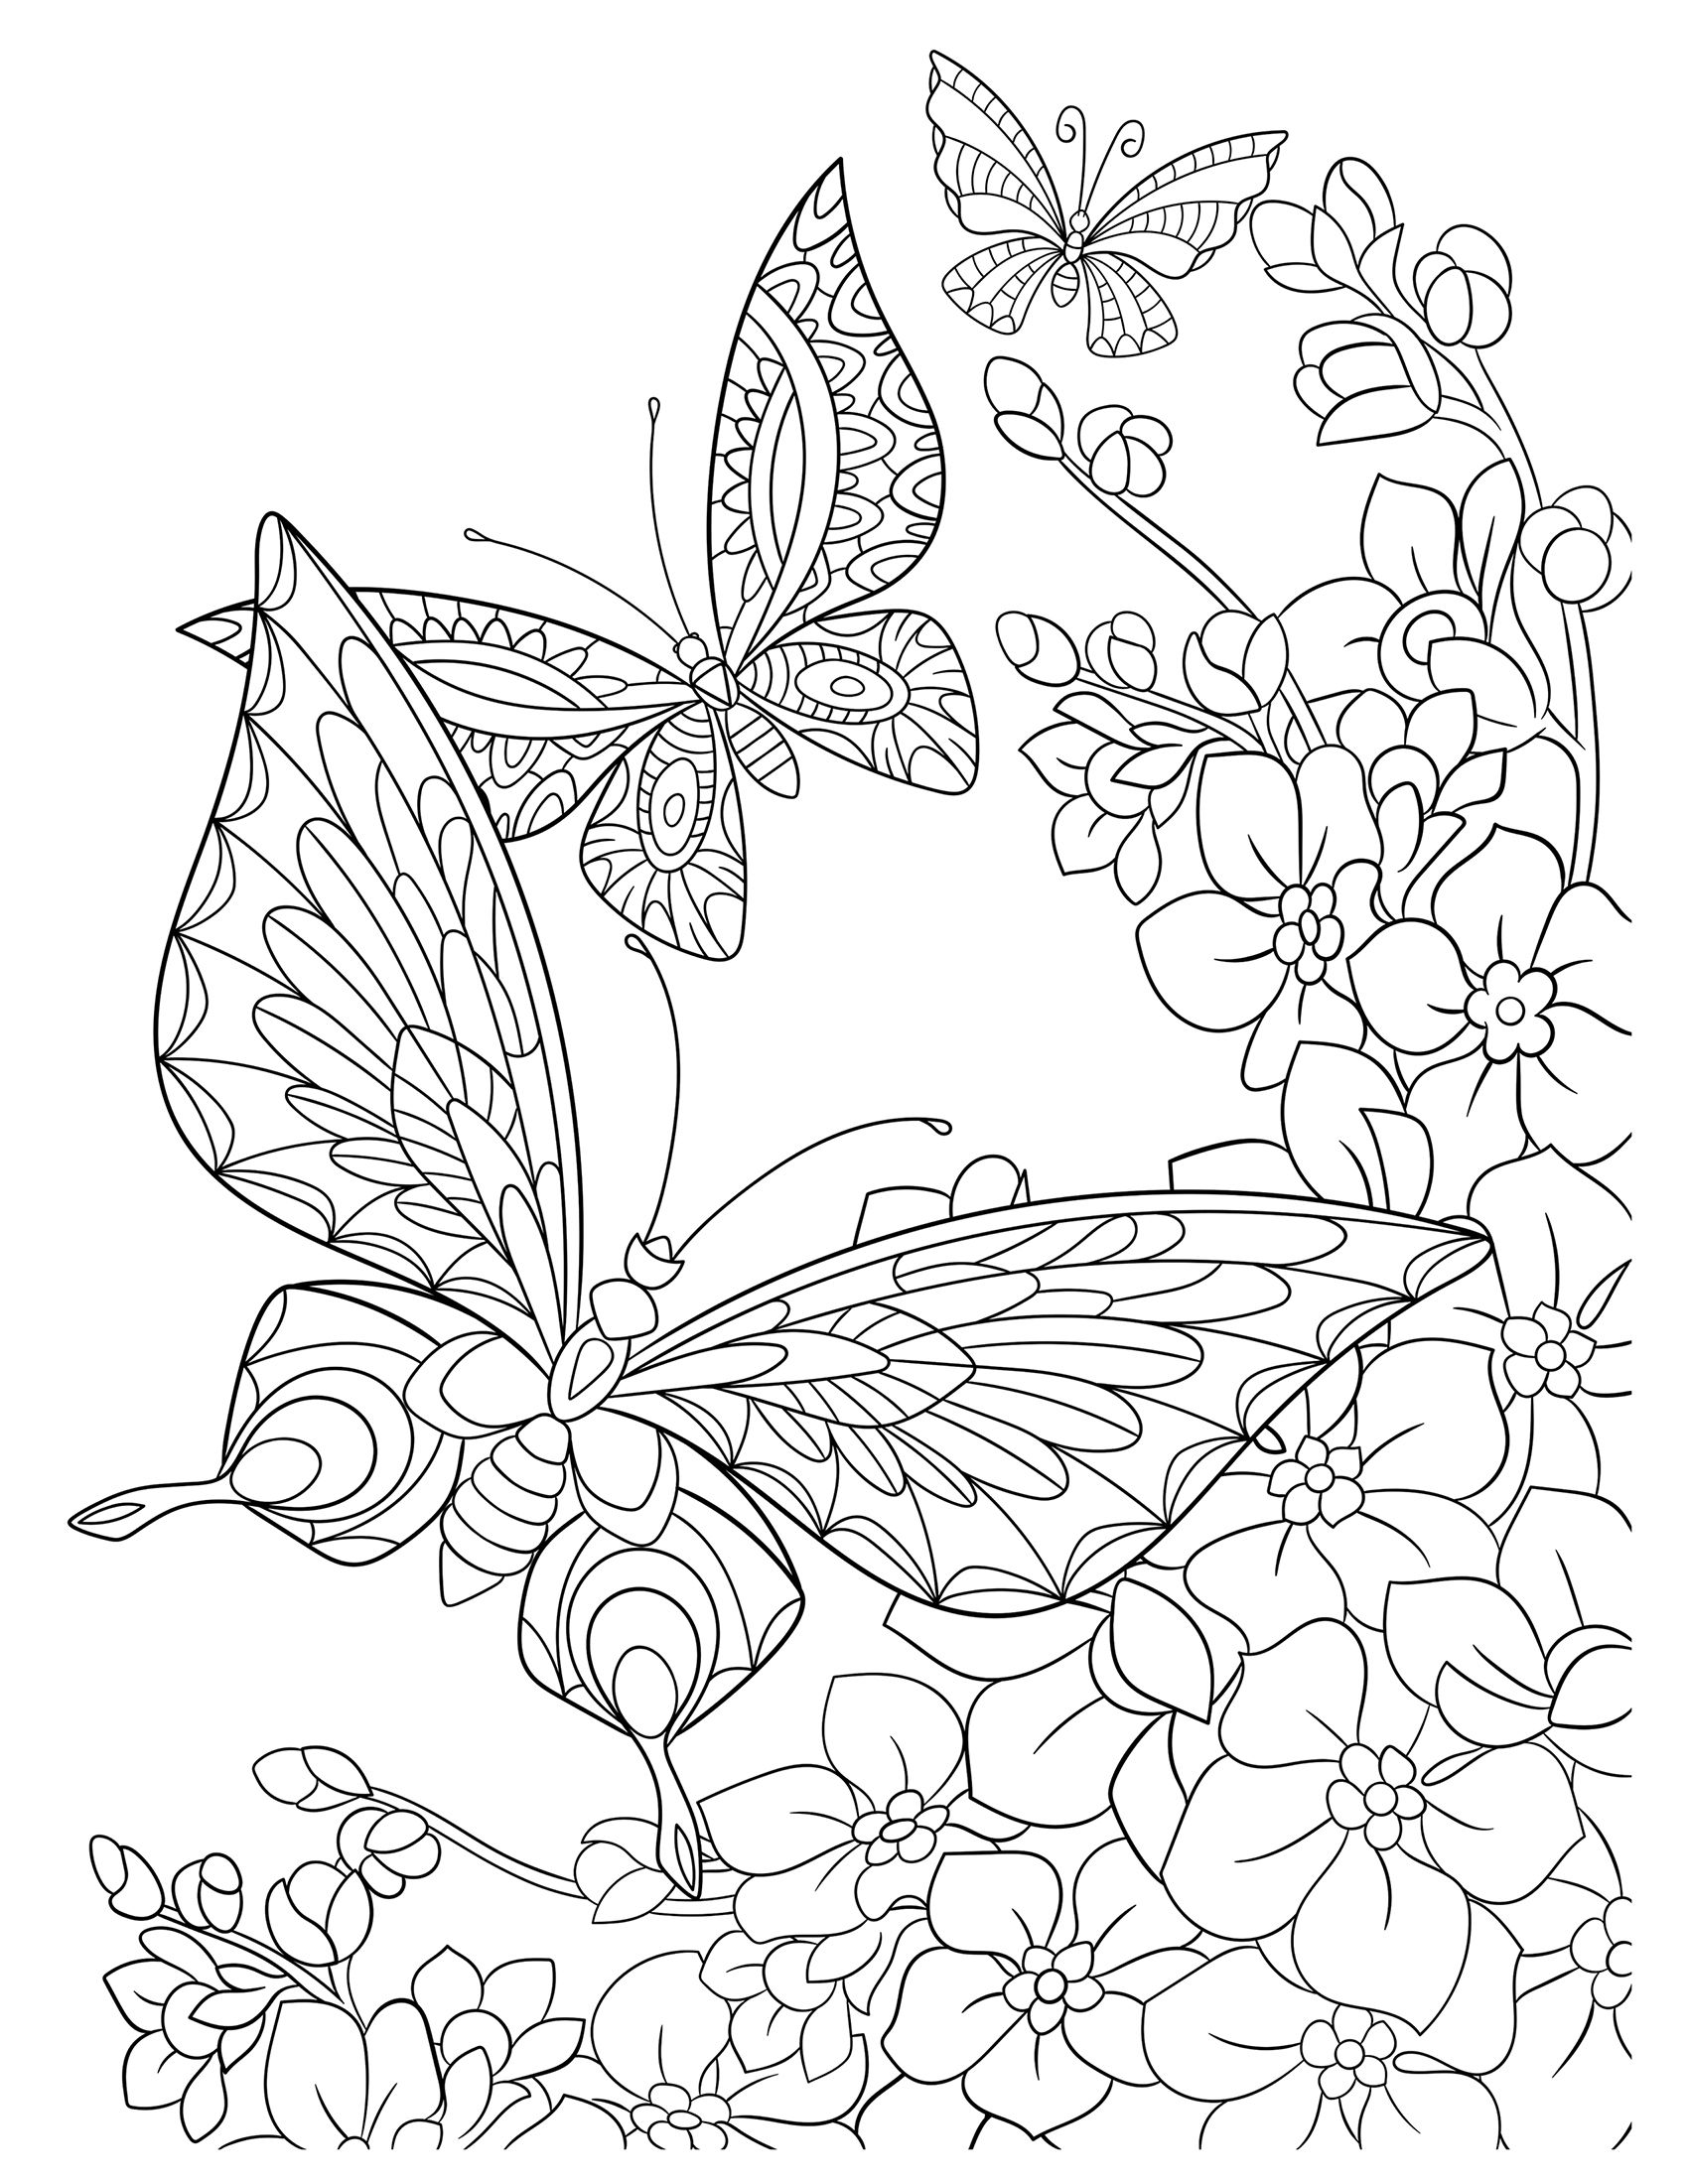 Spring Adult Coloring Page To Download Click On The Image To